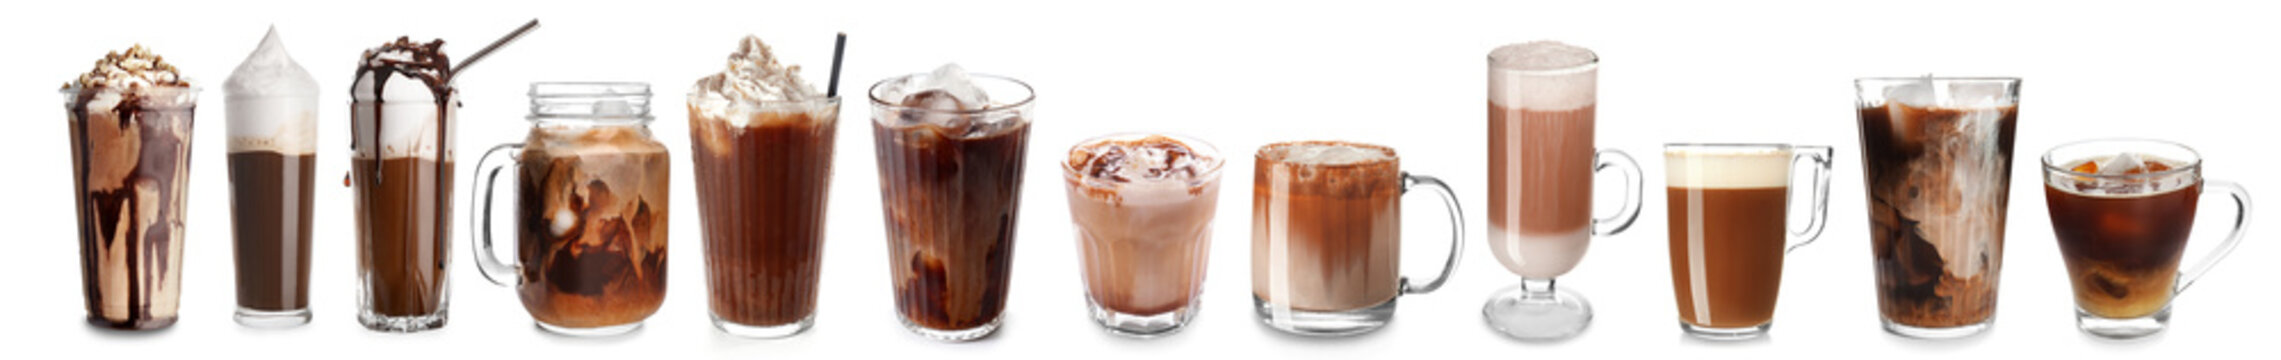 Plastic cup of tasty cold coffee with chocolate on white background